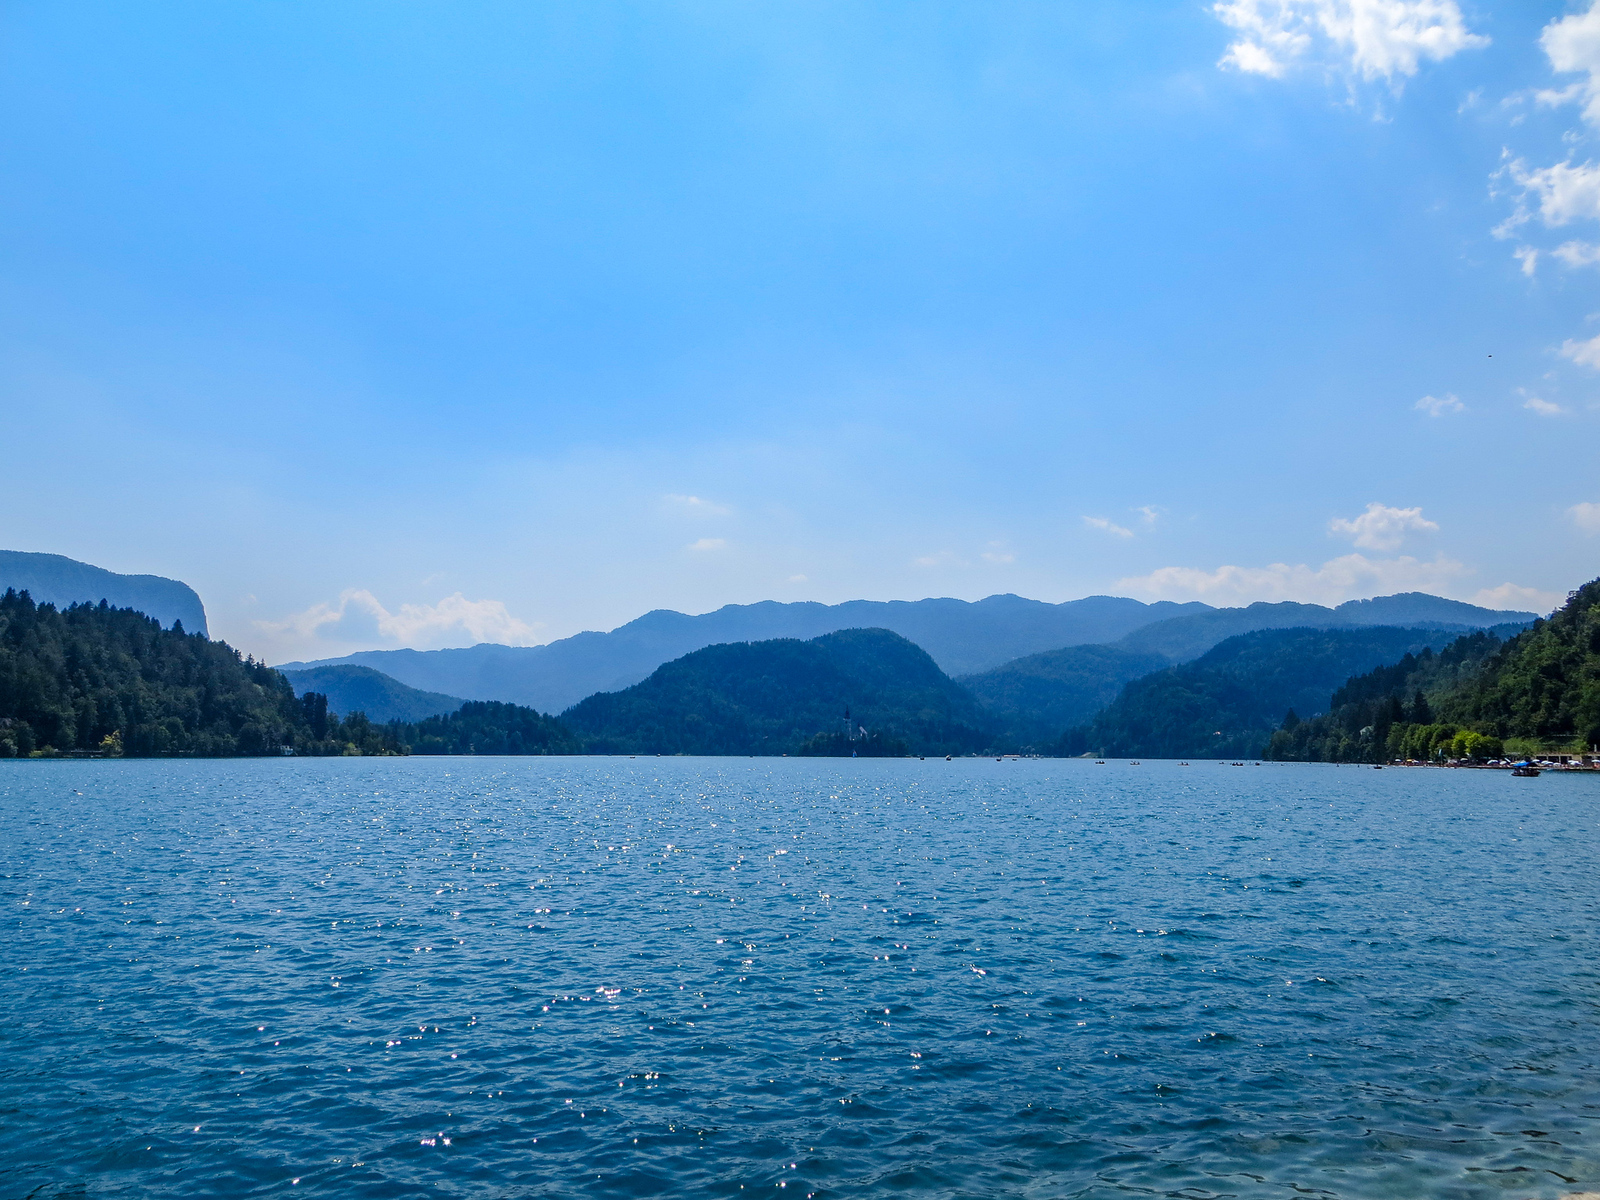 visiting slovenia will bring you to lake bled